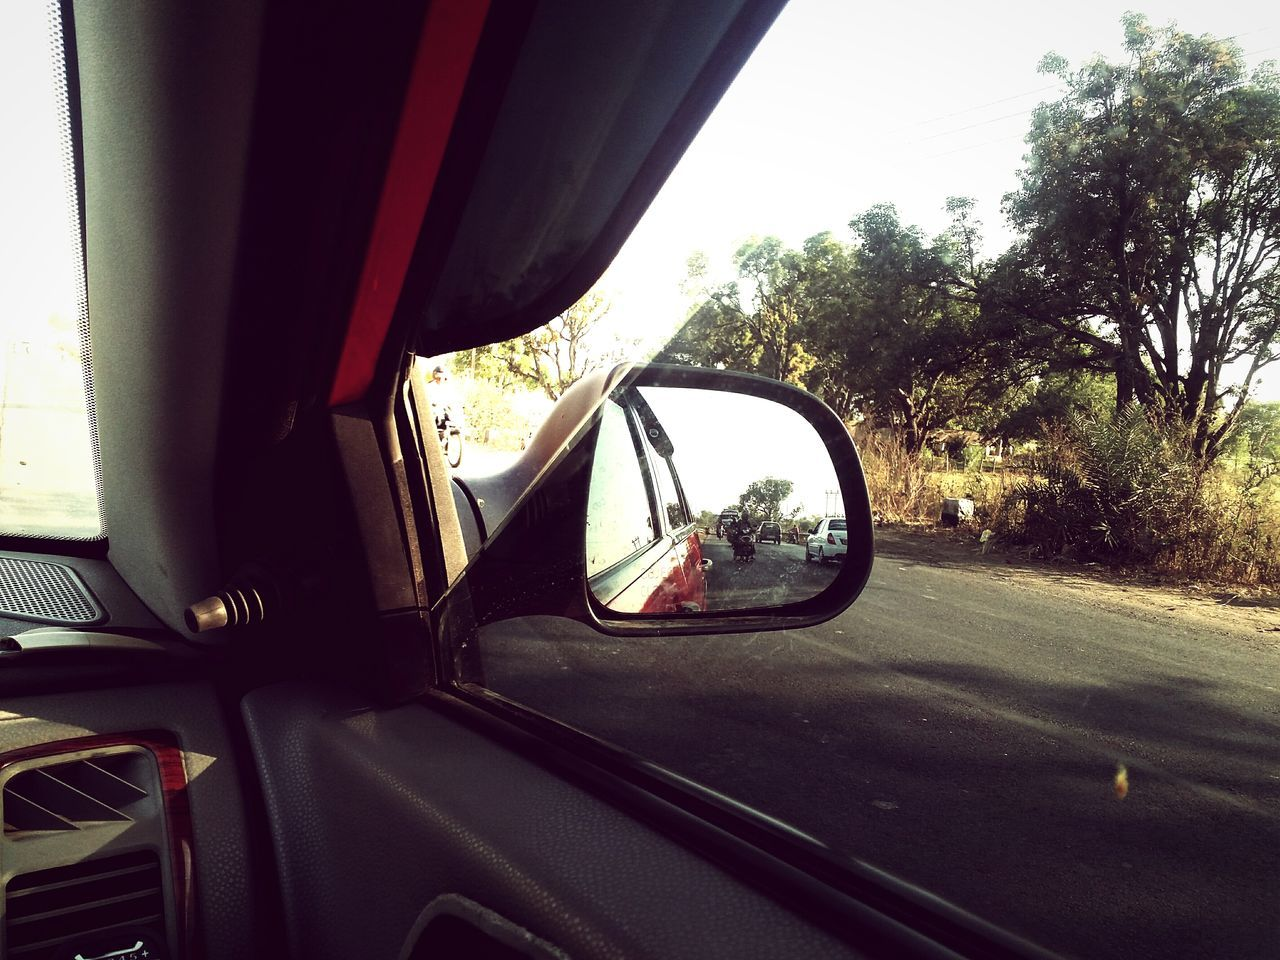 Car Transportation Vehicle Interior Mode Of Transport Land Vehicle Car Interior No People Outdoors Close-up Vehicle Mirror Outdoorlife Mobile Photography Edited This Myself Road Side Photography Road A Long Way To Go ... Scenics Light And Shadow Outdoor Photography Outdoors❤ EyeEm Best Edits Side-view Mirror